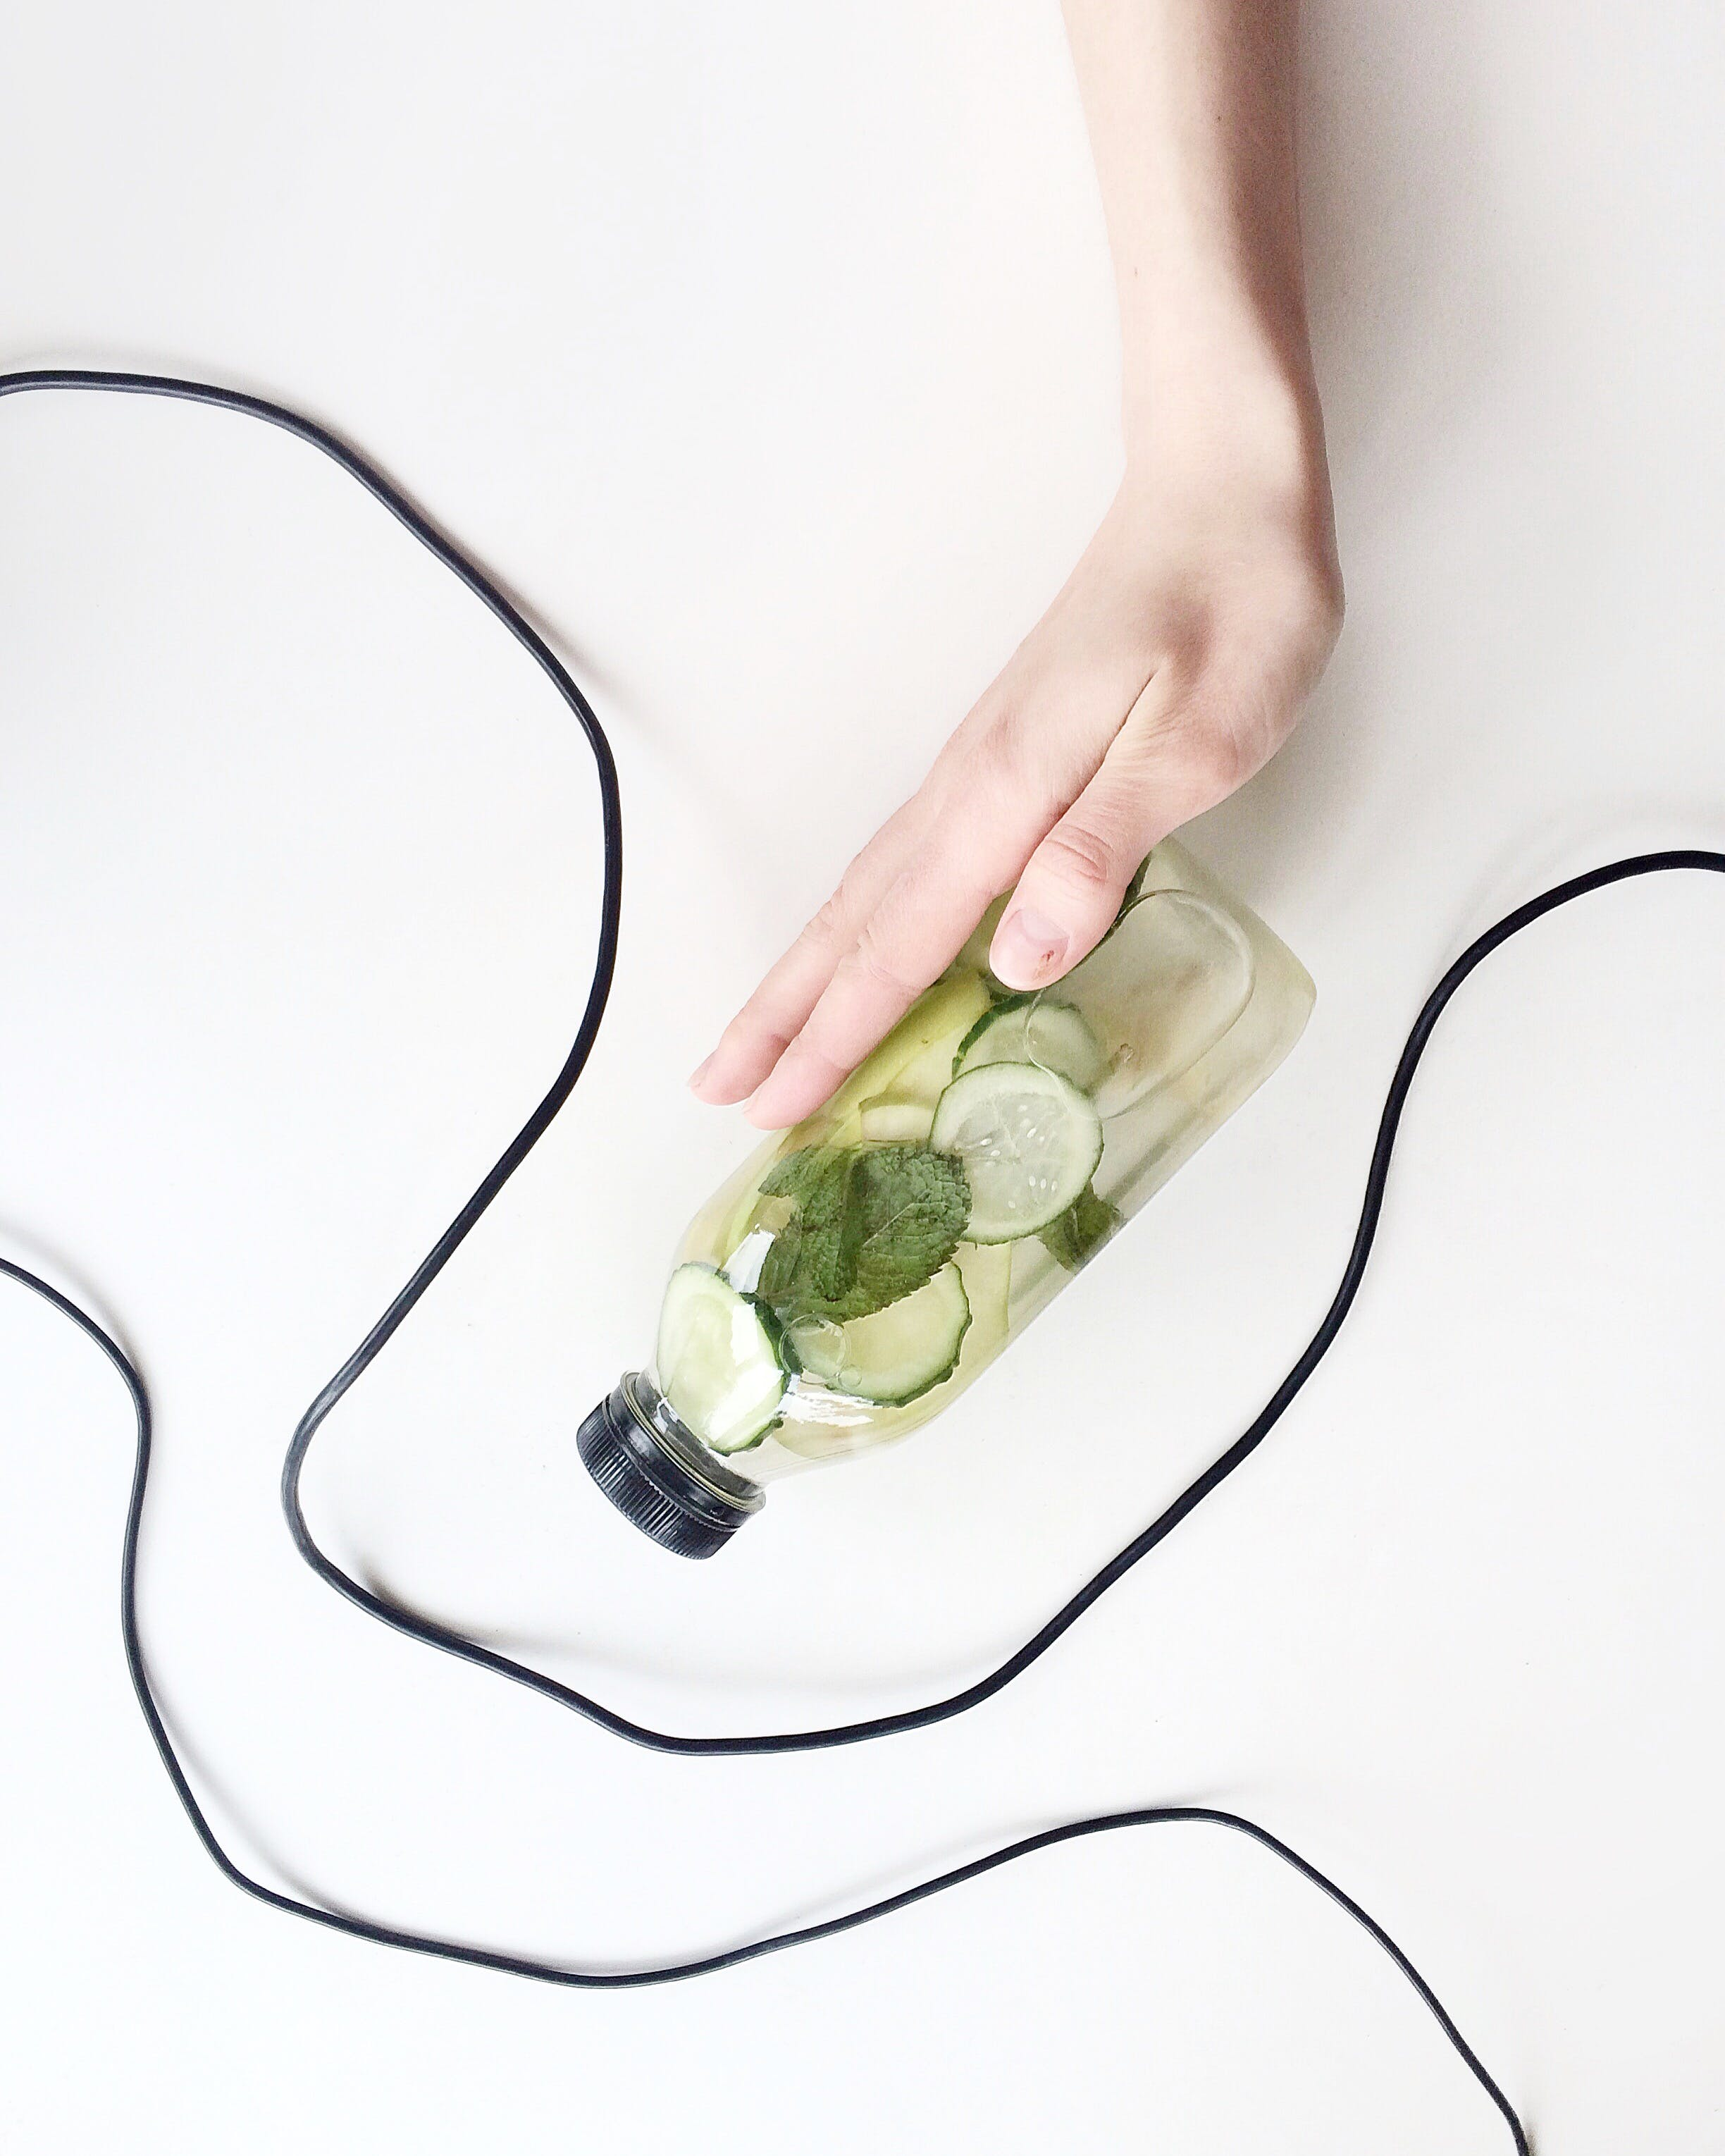 Person Holding Bottle and Cucumber